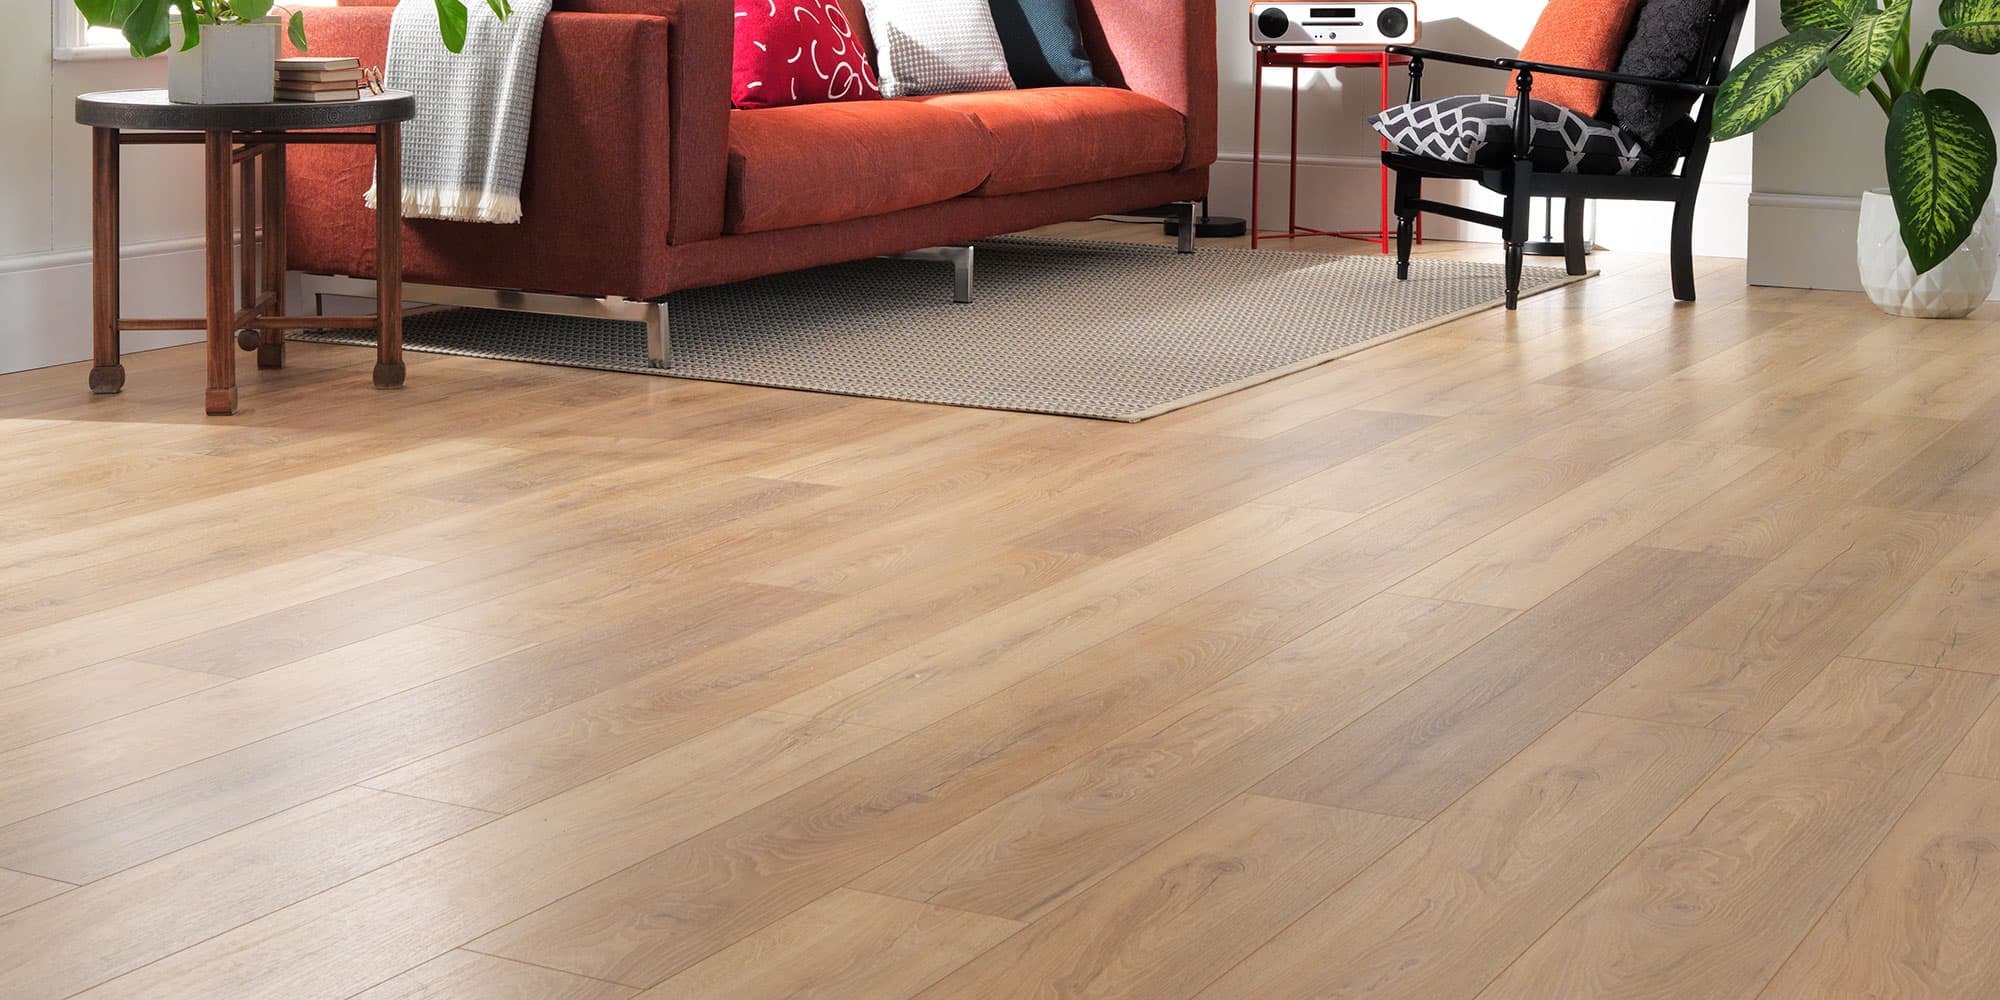 Laminate Flooring Alder Mortgage